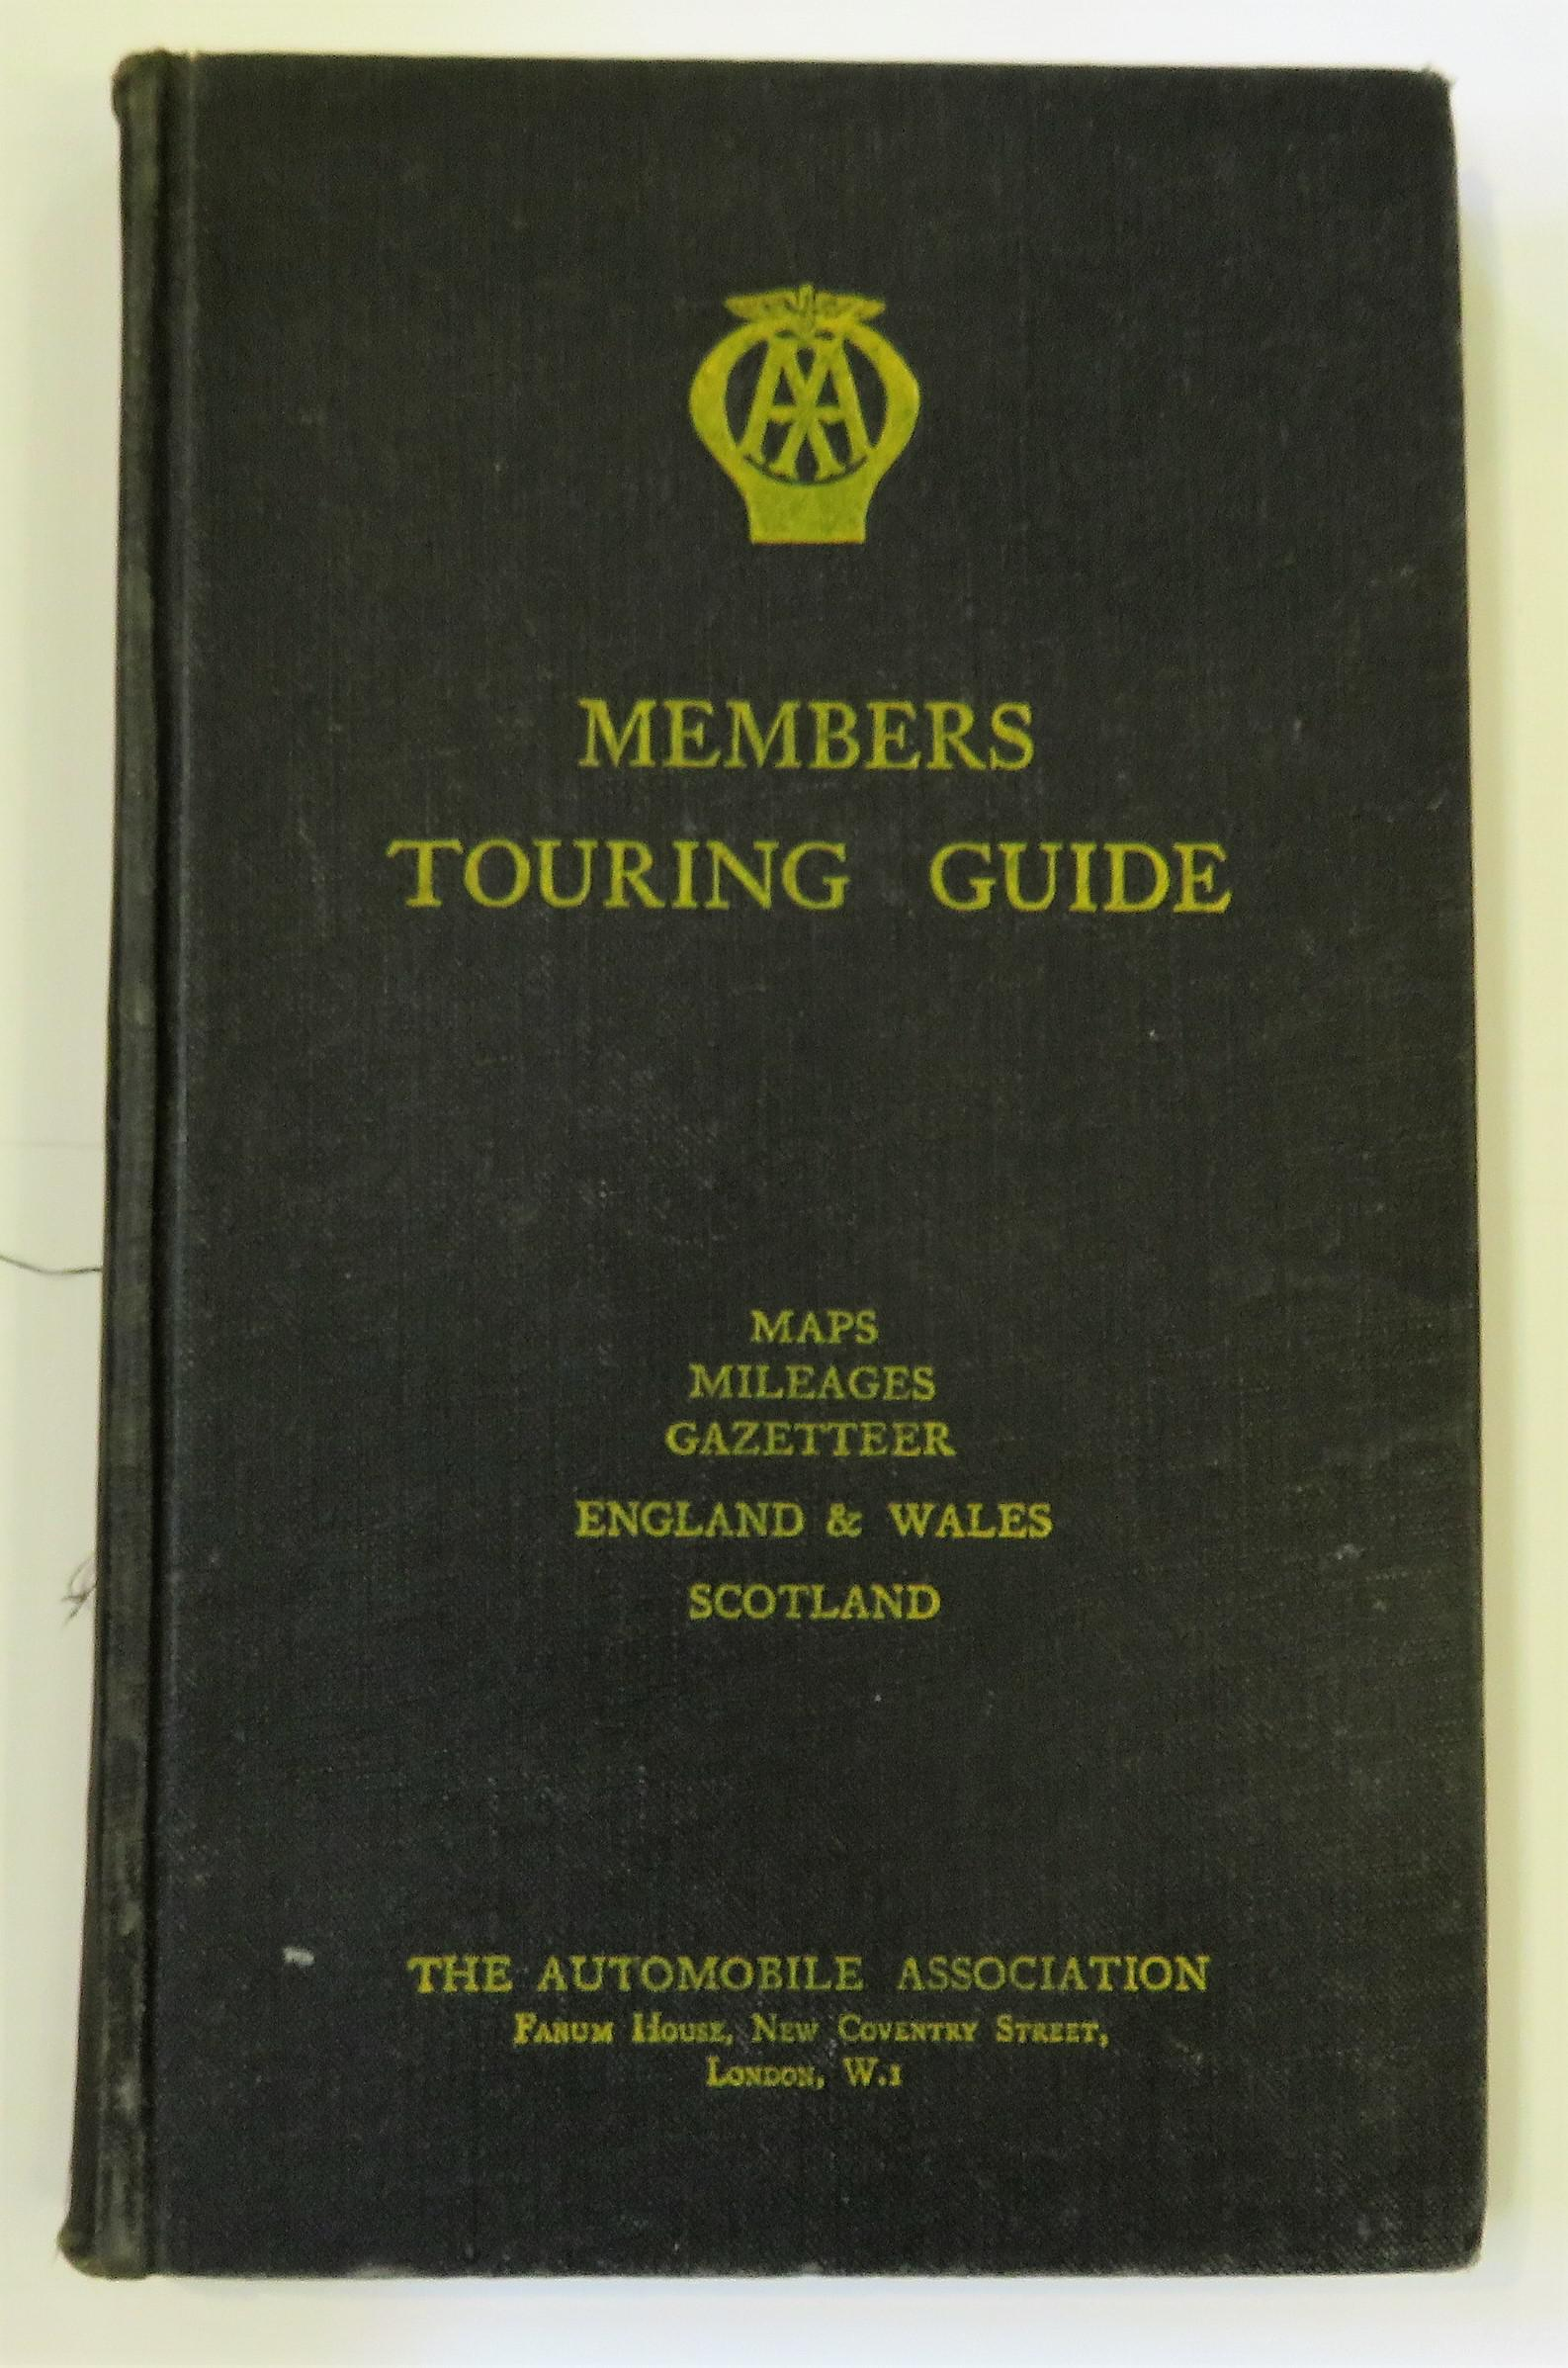 The Automobile Association Members Touring Guide